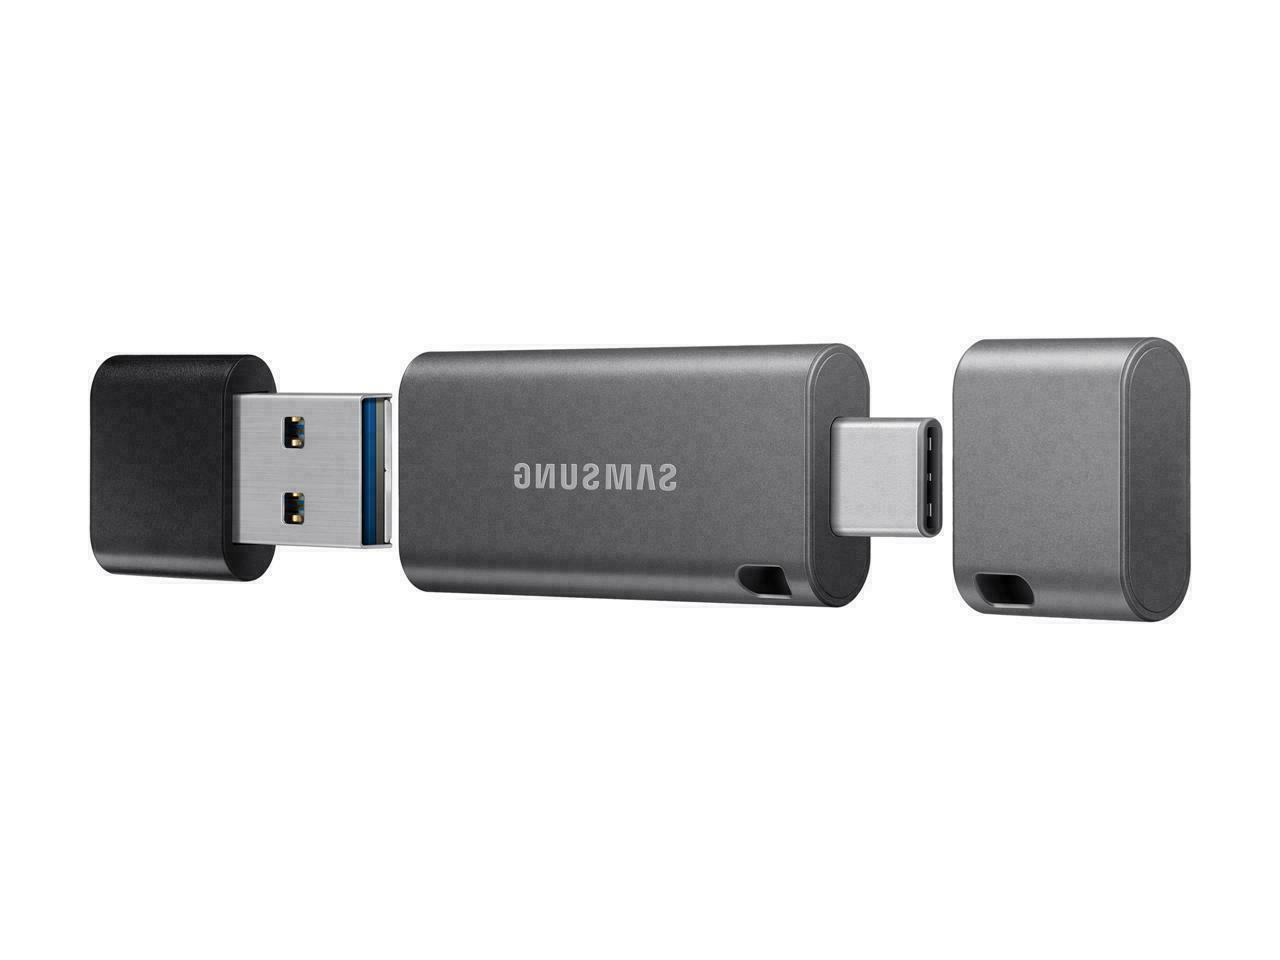 Samsung 256B Plus USB 3.1 Flash